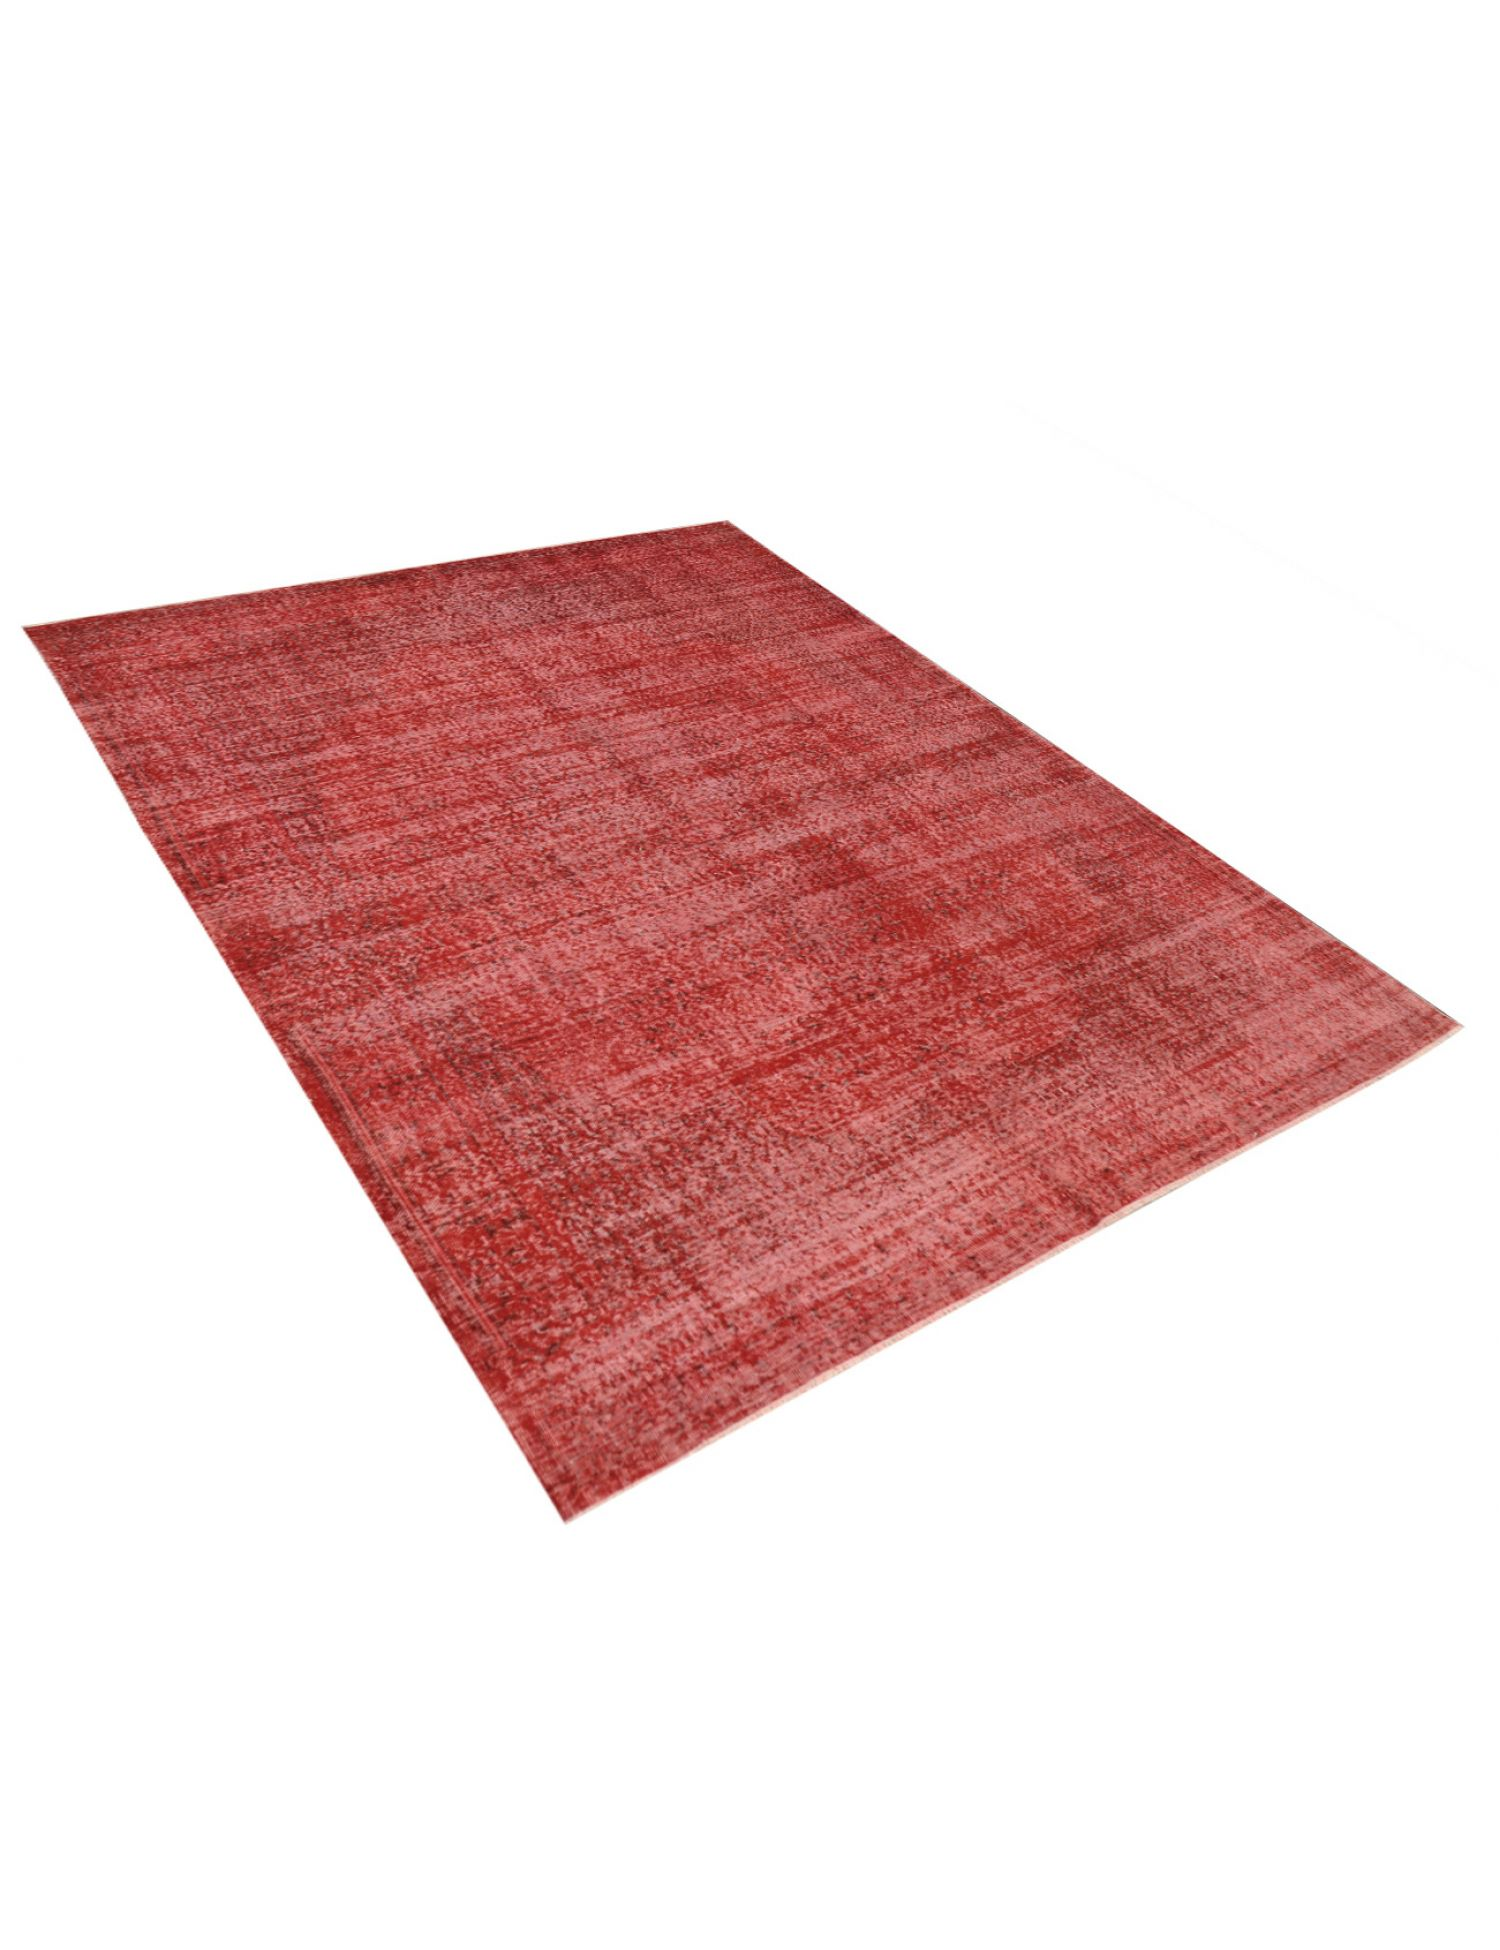 Vintage Carpet  red <br/>326 x 215 cm